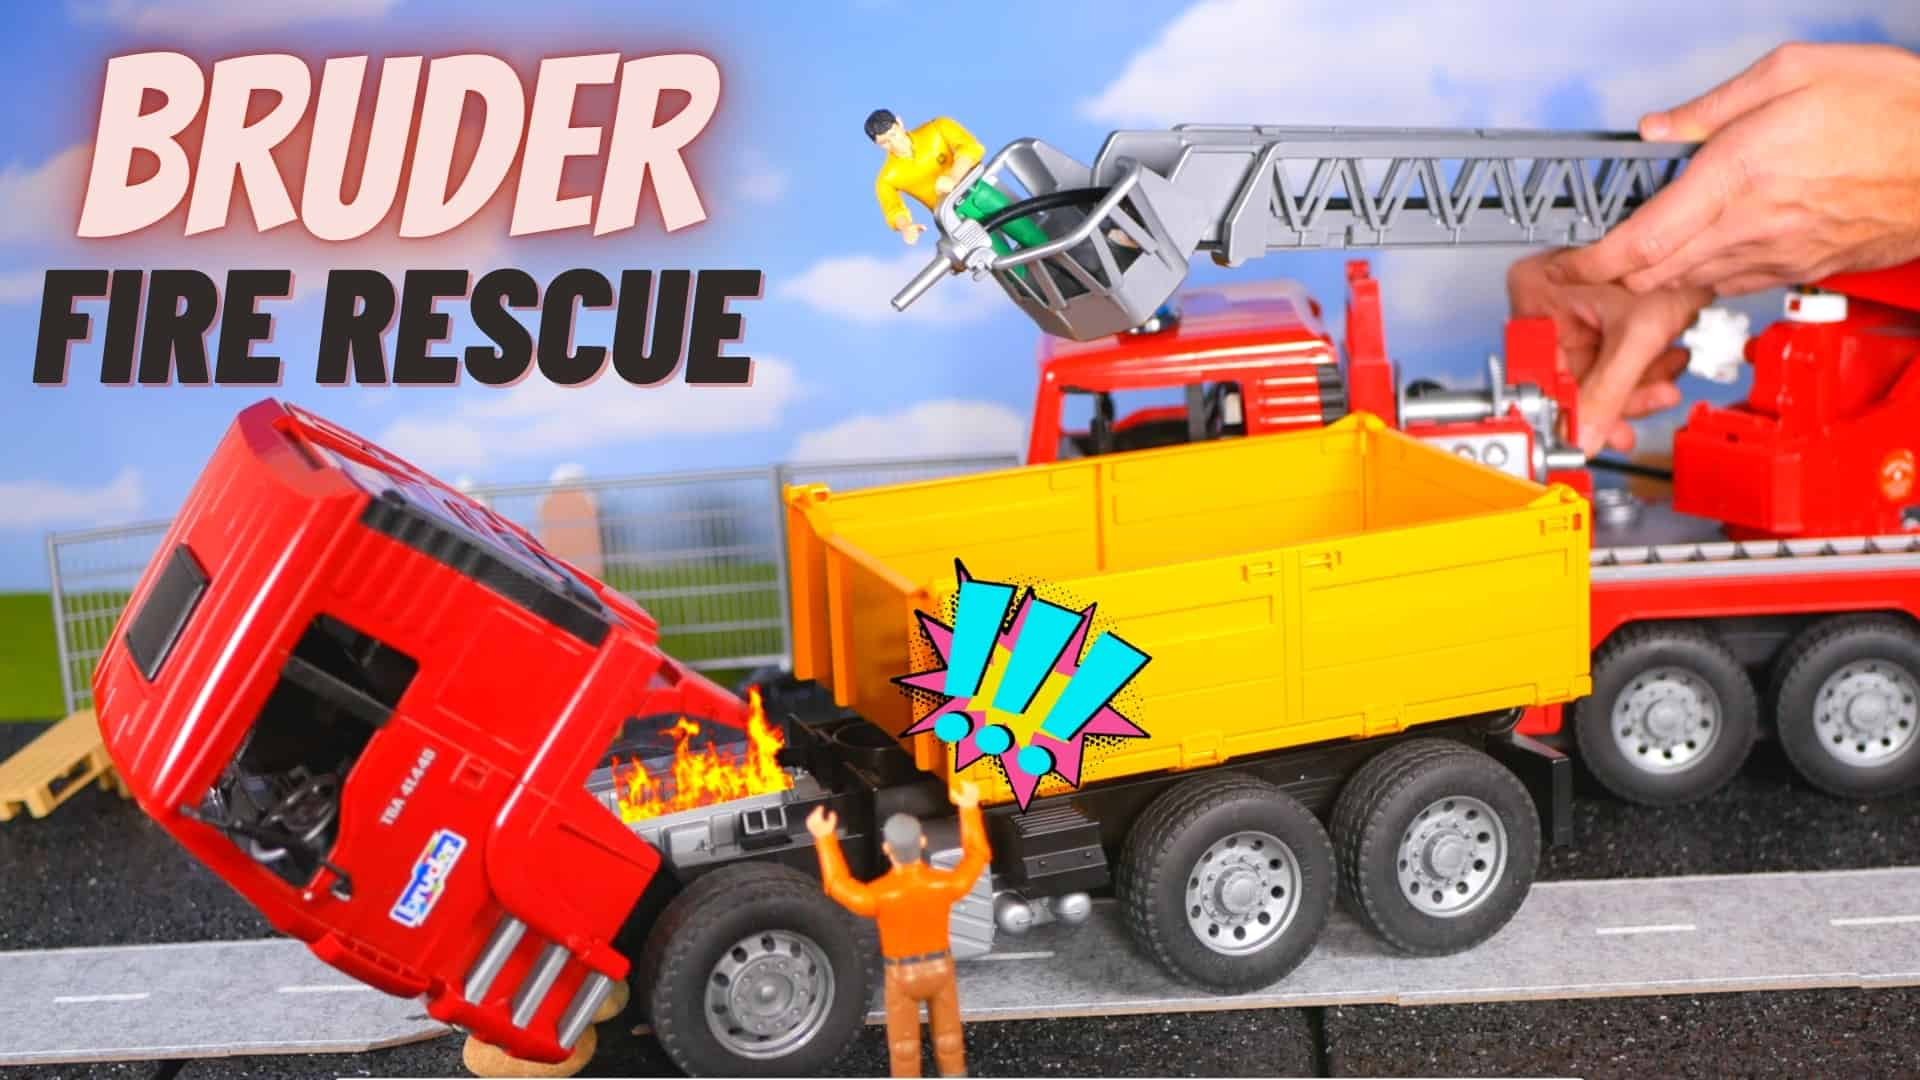 Bruder fire rescue emergency services